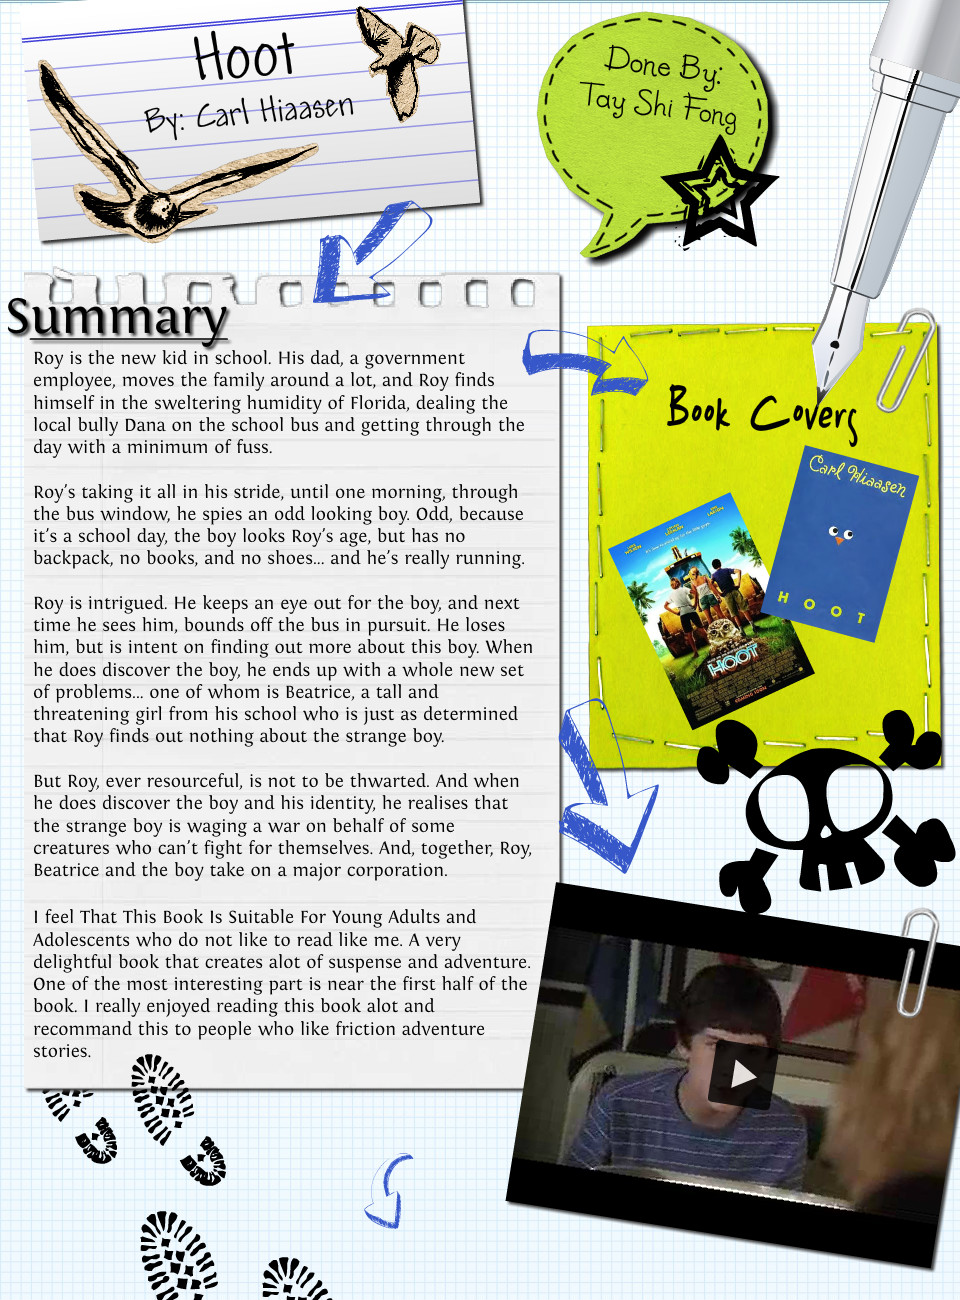 Hoot book report